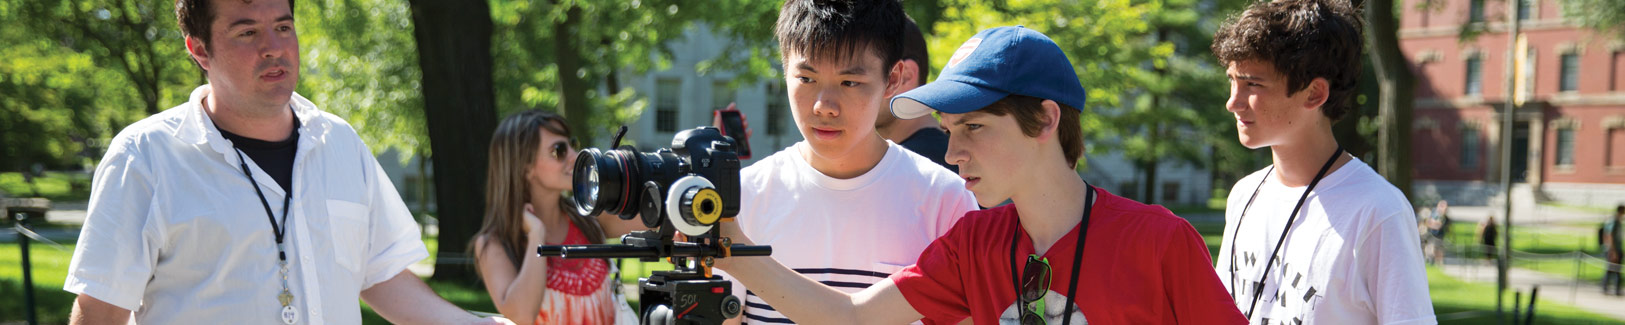 NYFA instructor supervises as his filmmaking students set up their camera outside under green trees.